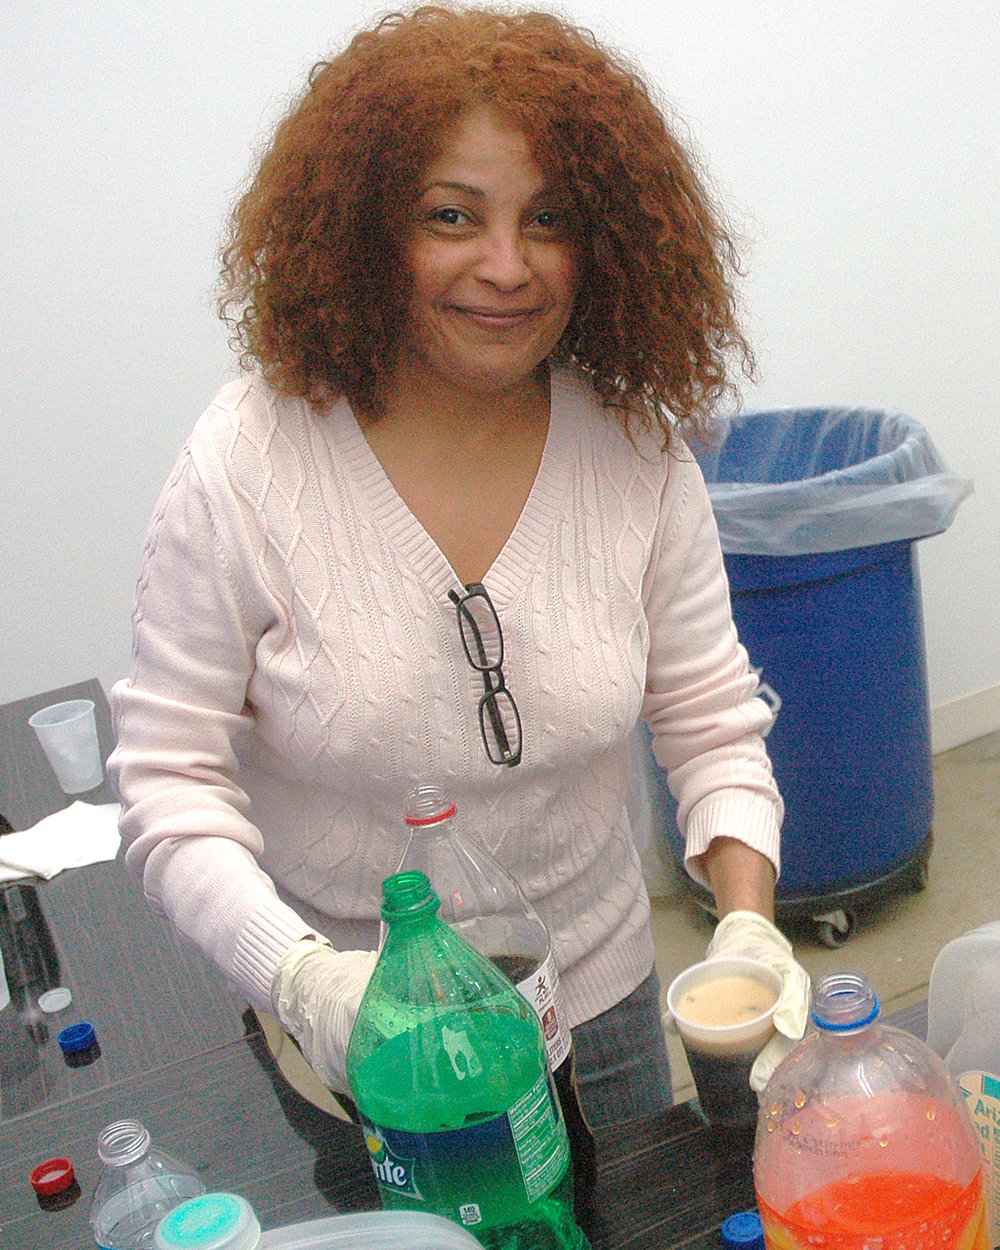 Velia Hernandez at the beverage station